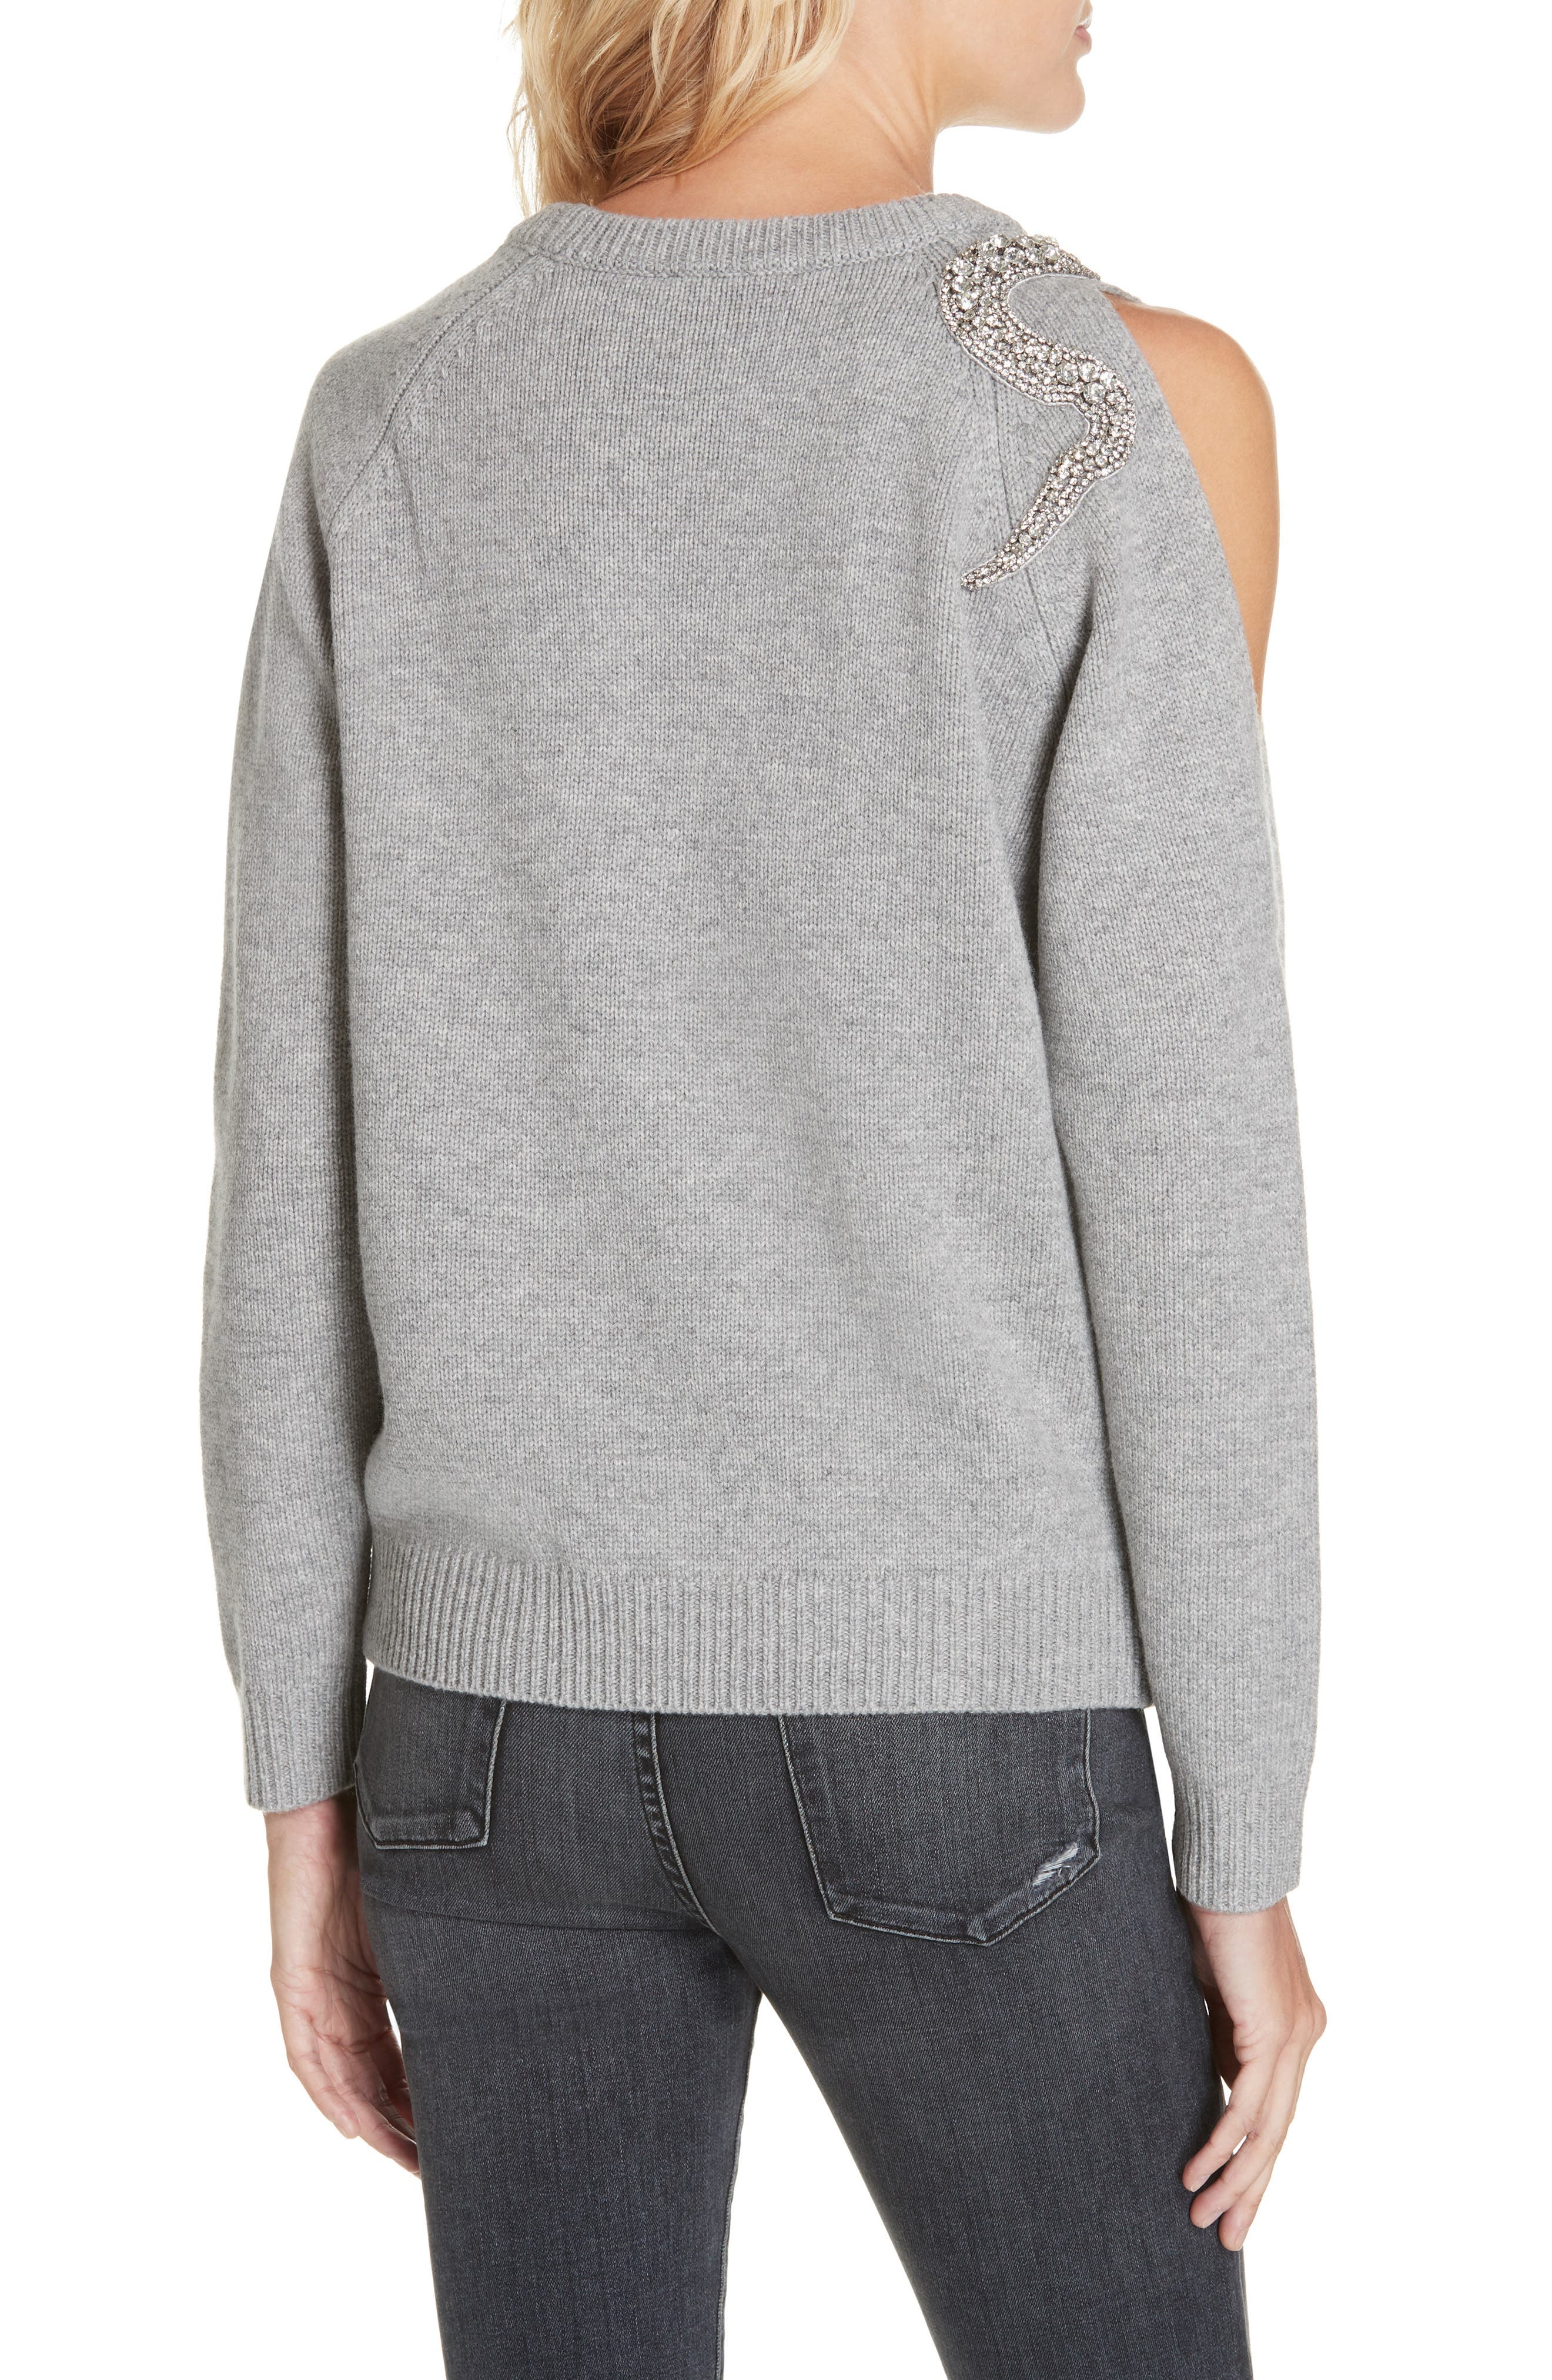 Ossi Embellished Wool Sweater,                             Alternate thumbnail 2, color,                             GRIS